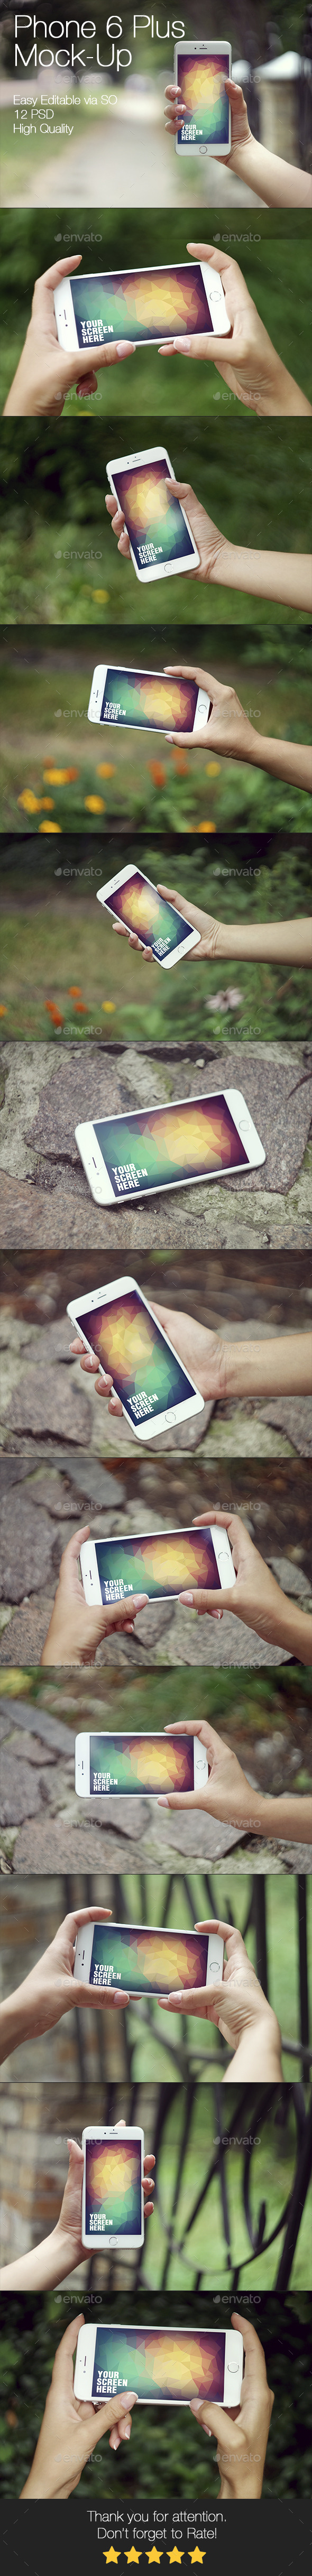 Phone 6 Plus Mockup - Mobile Displays